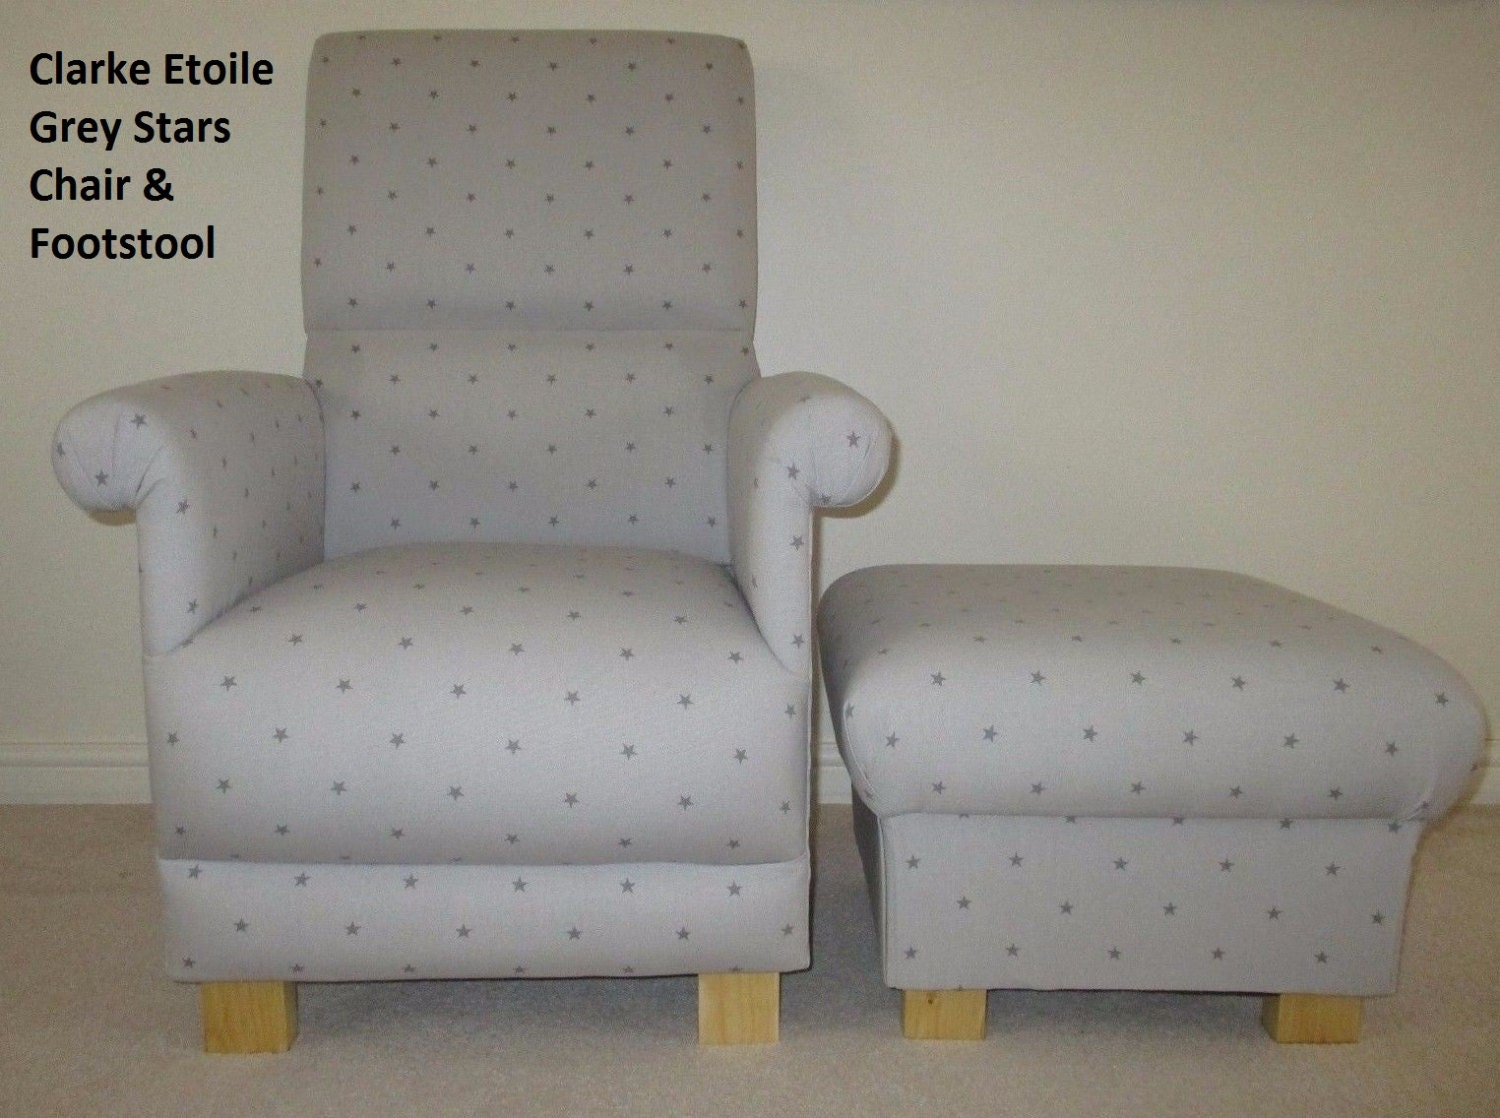 Clarke  Clarke Etoile Stars Fabric Adult Chair and Footstool Grey or Linen Beige Armchair Footstall Nursery